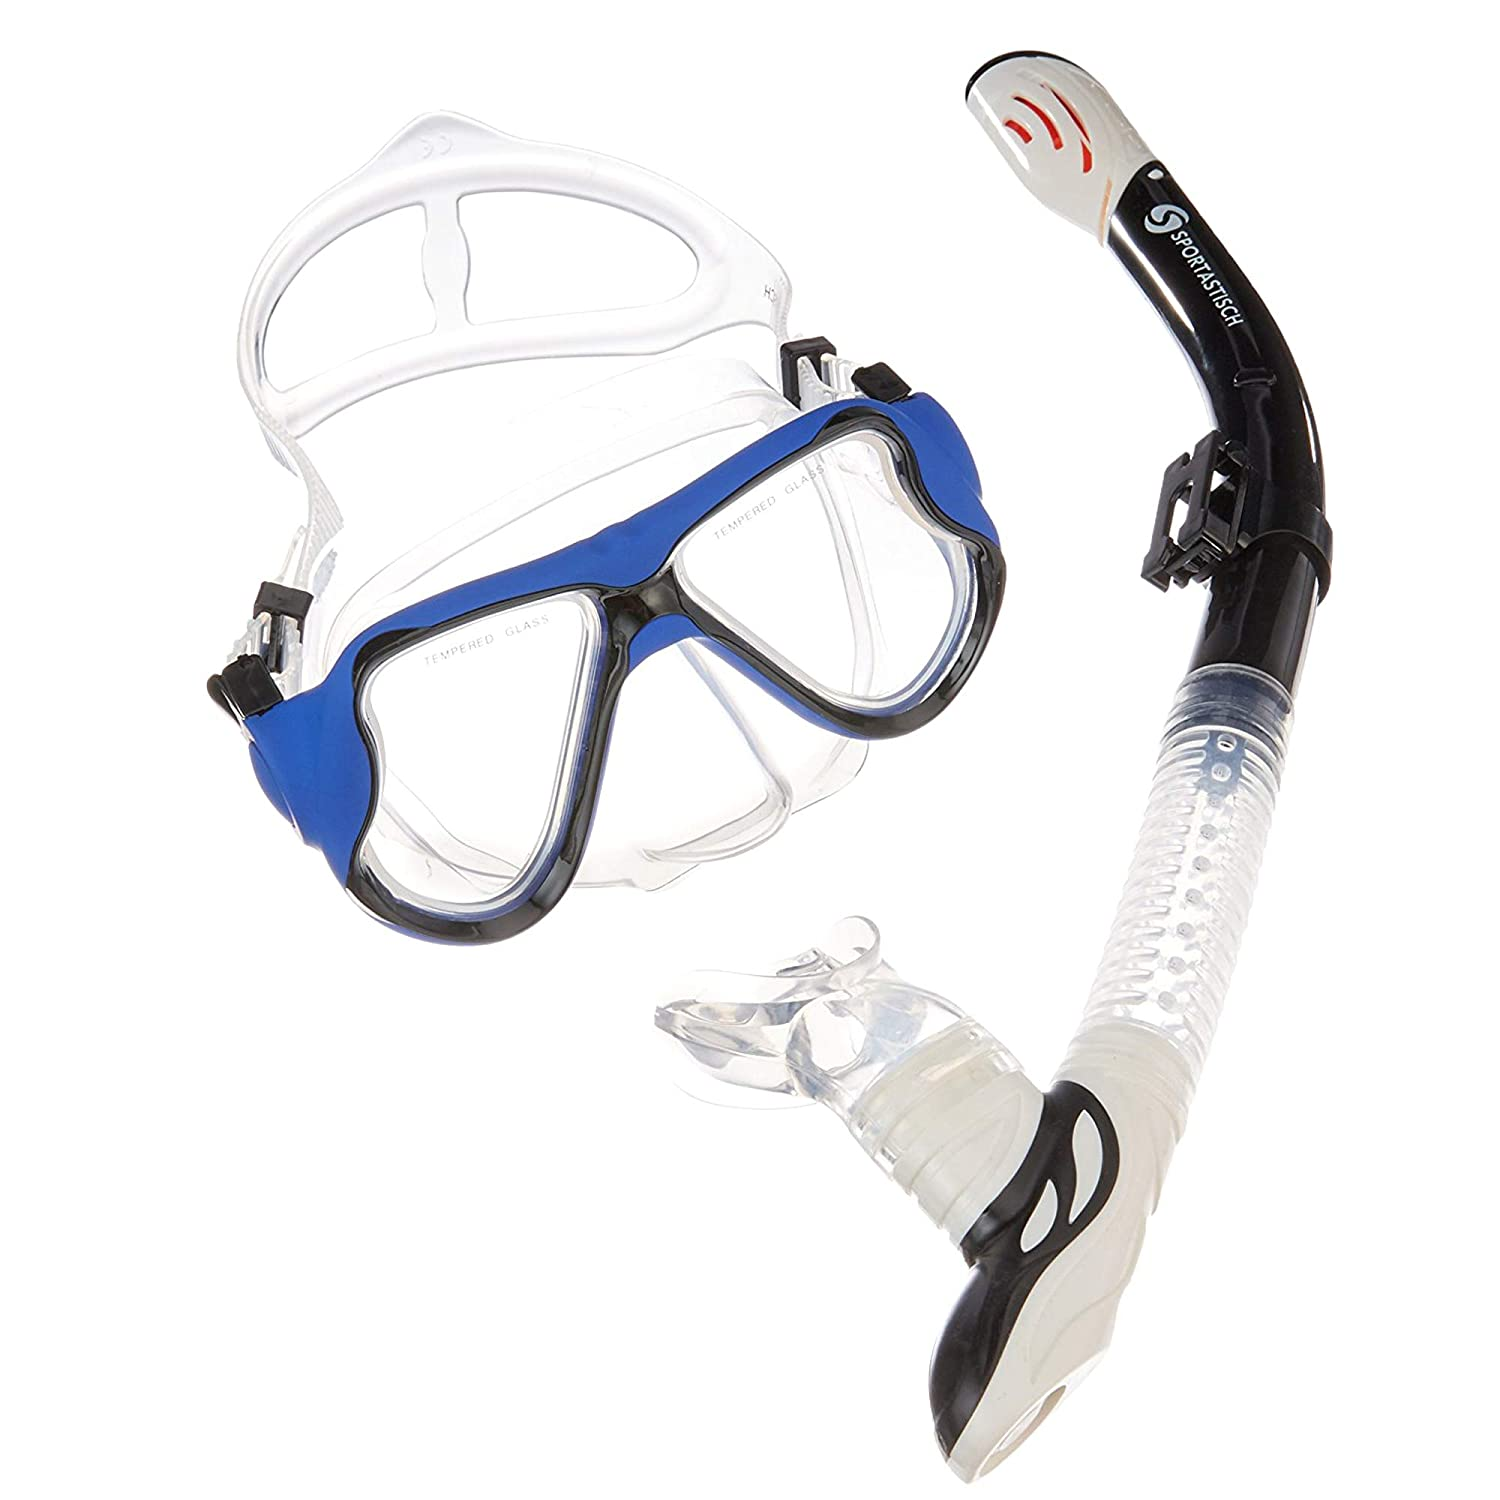 'Comparison Winner: Professional Snorkel Star: Snorkel Set: Mask + Dry Snorkel + BAG:: Blue/White Unisex Adults and Children Over 10 Years: No Fin:: 3 Years Warranty Sportastisch